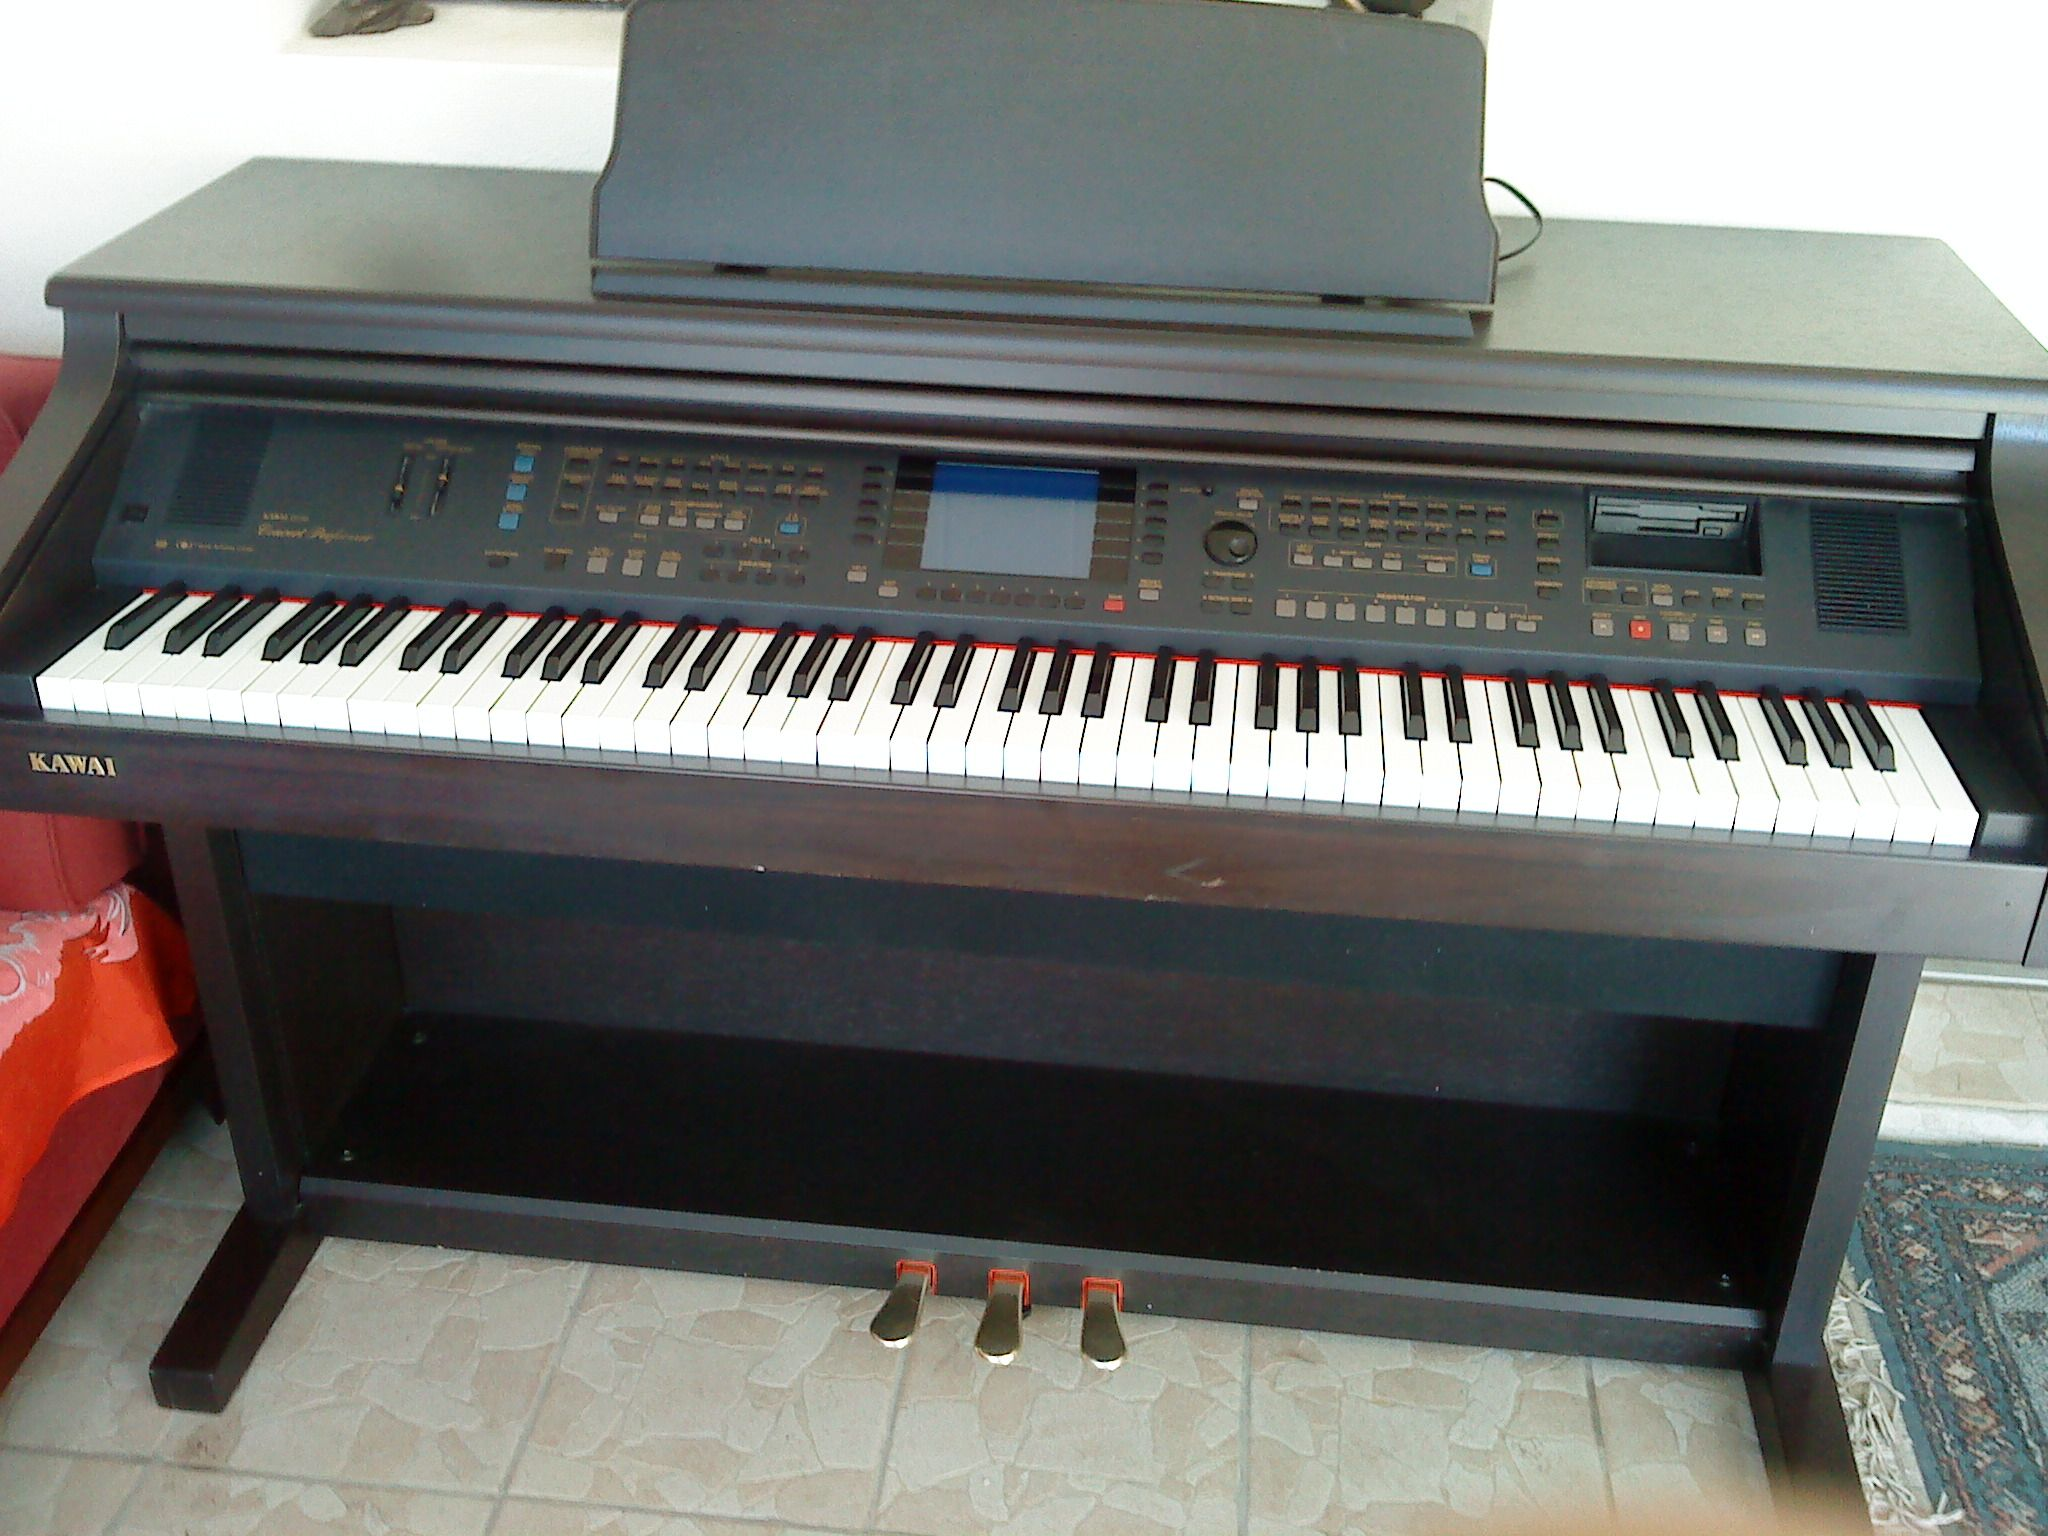 Kawai Cp150 Cyanure74 Images Piano Digital Piano Music Instruments